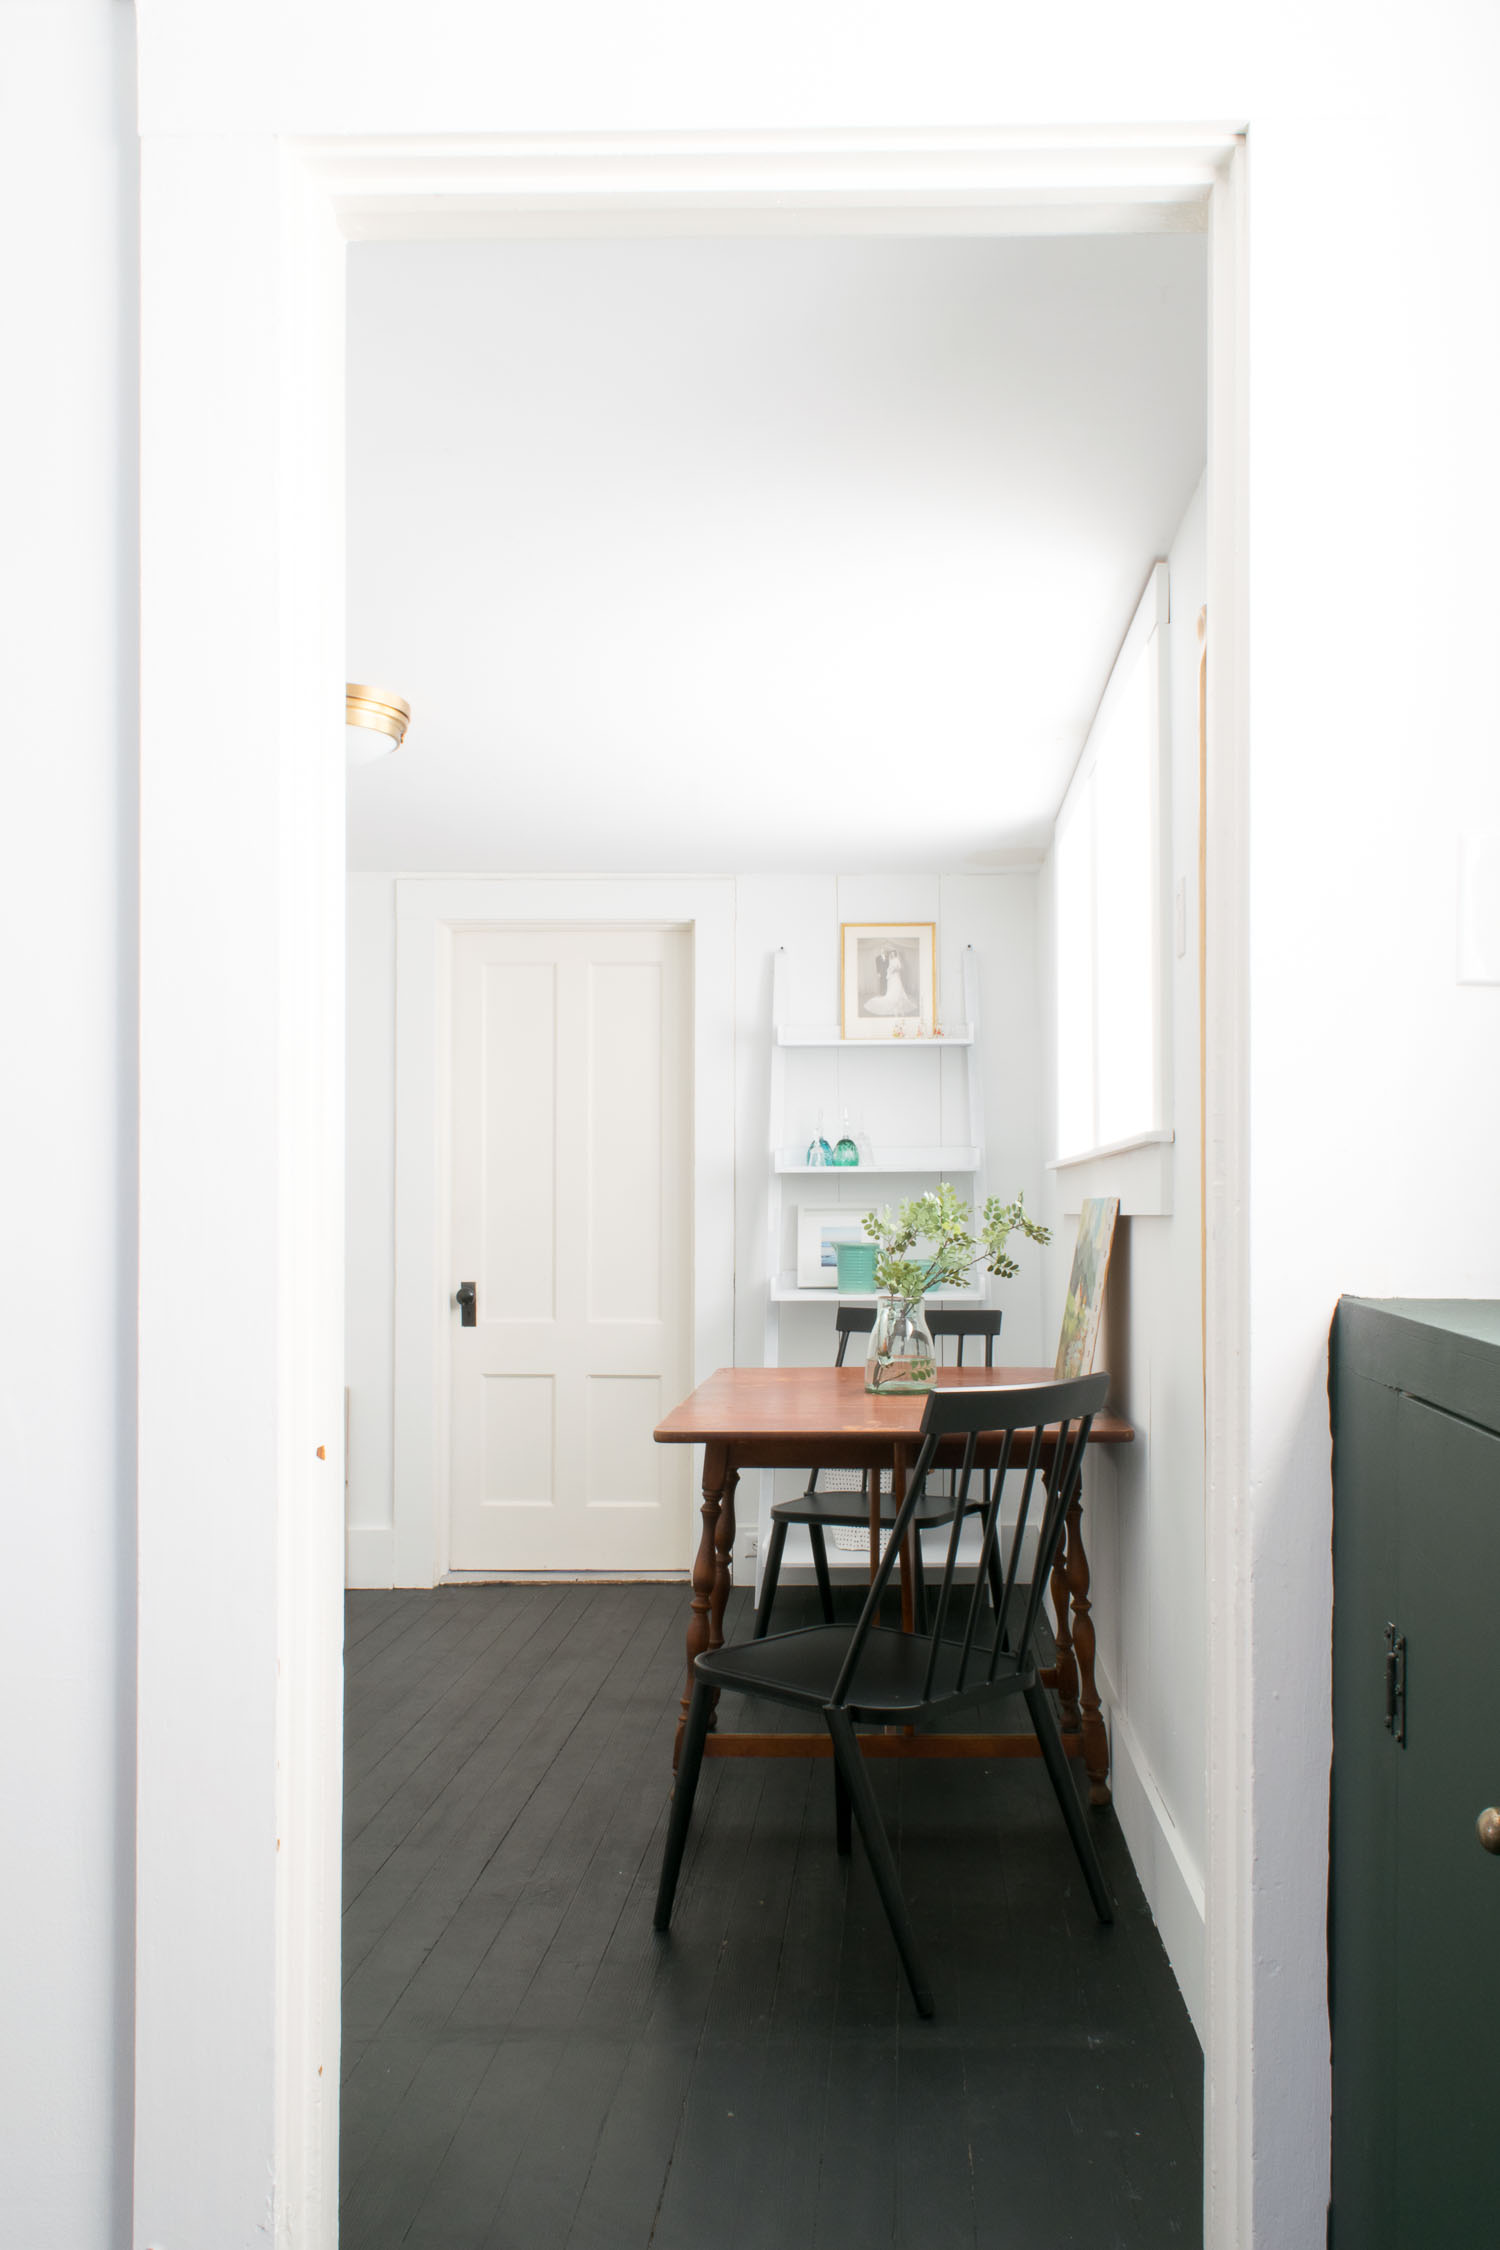 Historic home Airbnb remodel with breakfast bar and black painted hardwood floors designed by DIY & Home Bloggers This Giant Life.